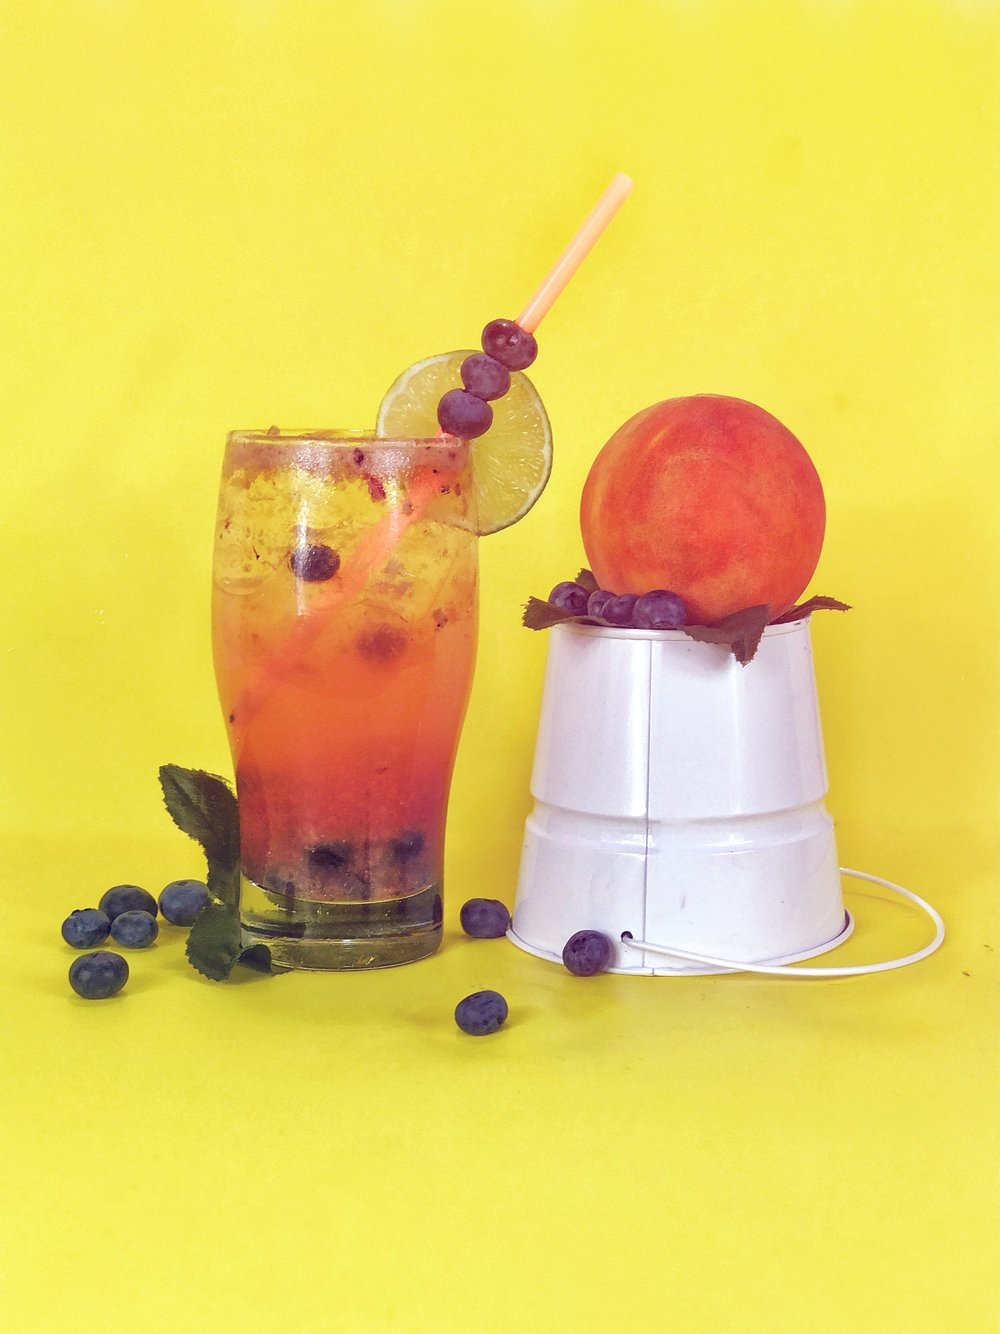 Peach-blueberrybourbon fizz - 1. Muddle blueberry and peach.2. Add bourbon (2oz), lime juice (2oz), egg white (1/2oz), and simple syrup (1/2 oz). 3. Shake hard w/ ice. 4. Top with soda. 5. Garnish w/ cherry (if ya like!).